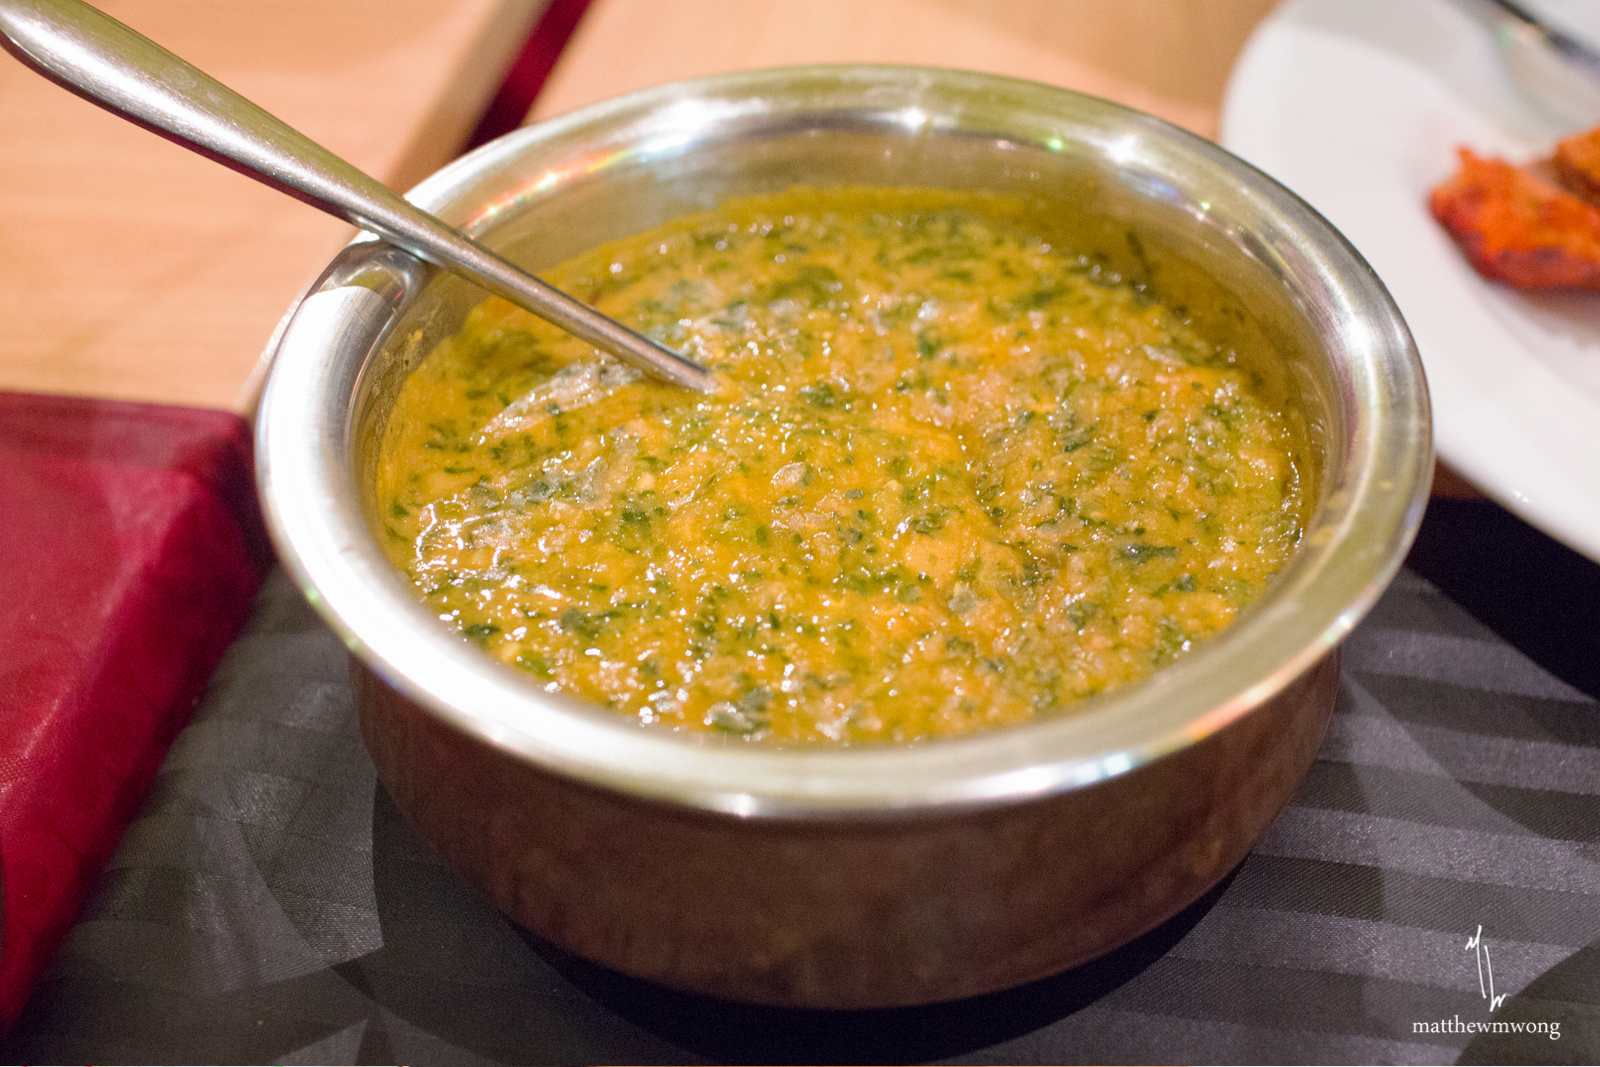 Alu Palak, quarters of potato and spinach in curry